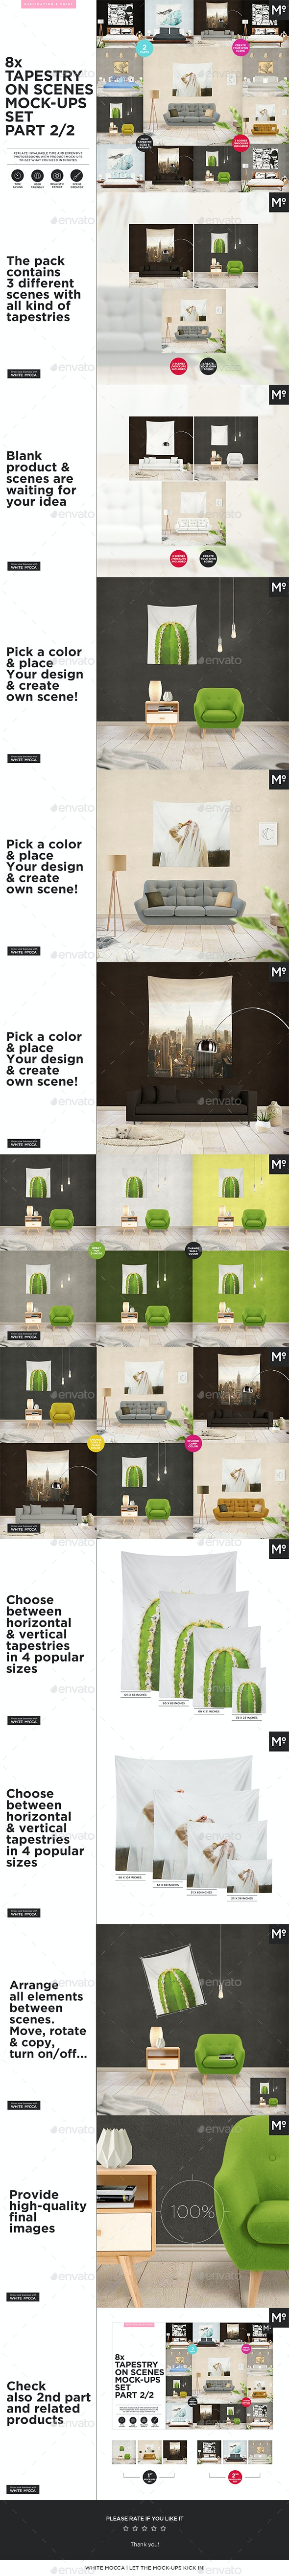 8x Tapestry on Scenes Mock-ups 1/2 - Miscellaneous Product Mock-Ups